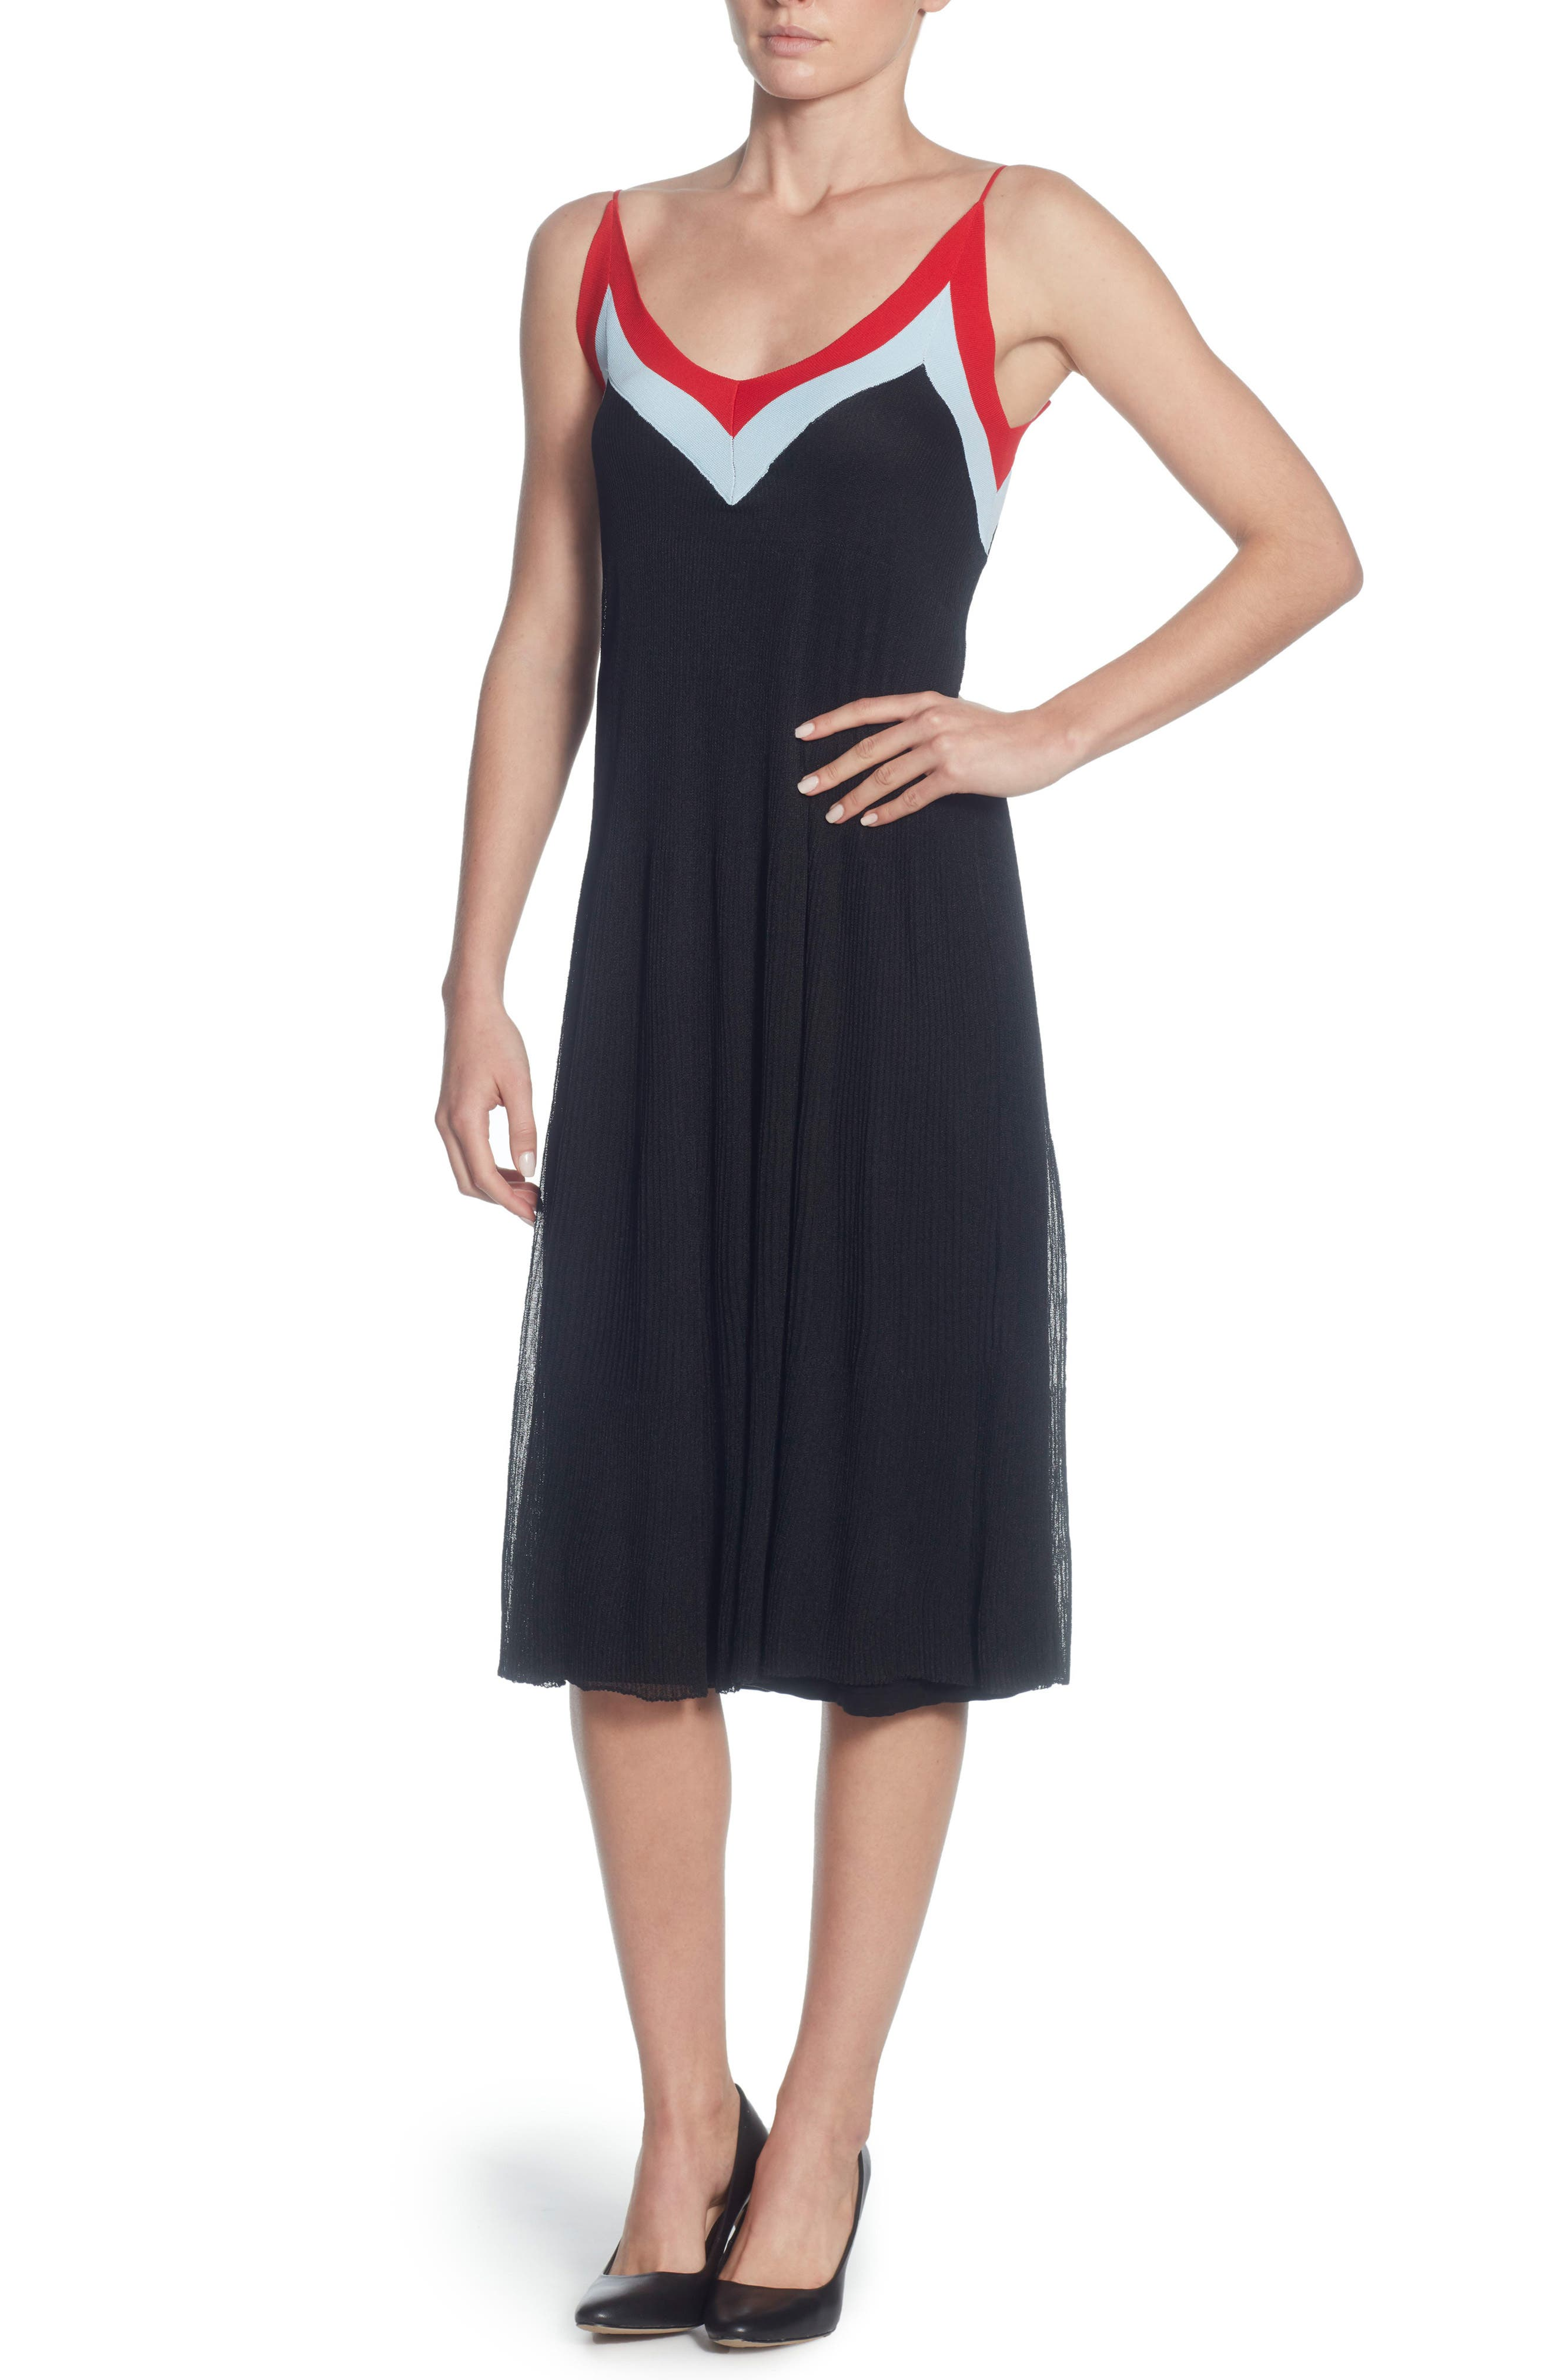 Olympe Fit and Flare Dress,                             Main thumbnail 1, color,                             Black/ Powder Blue/ Red